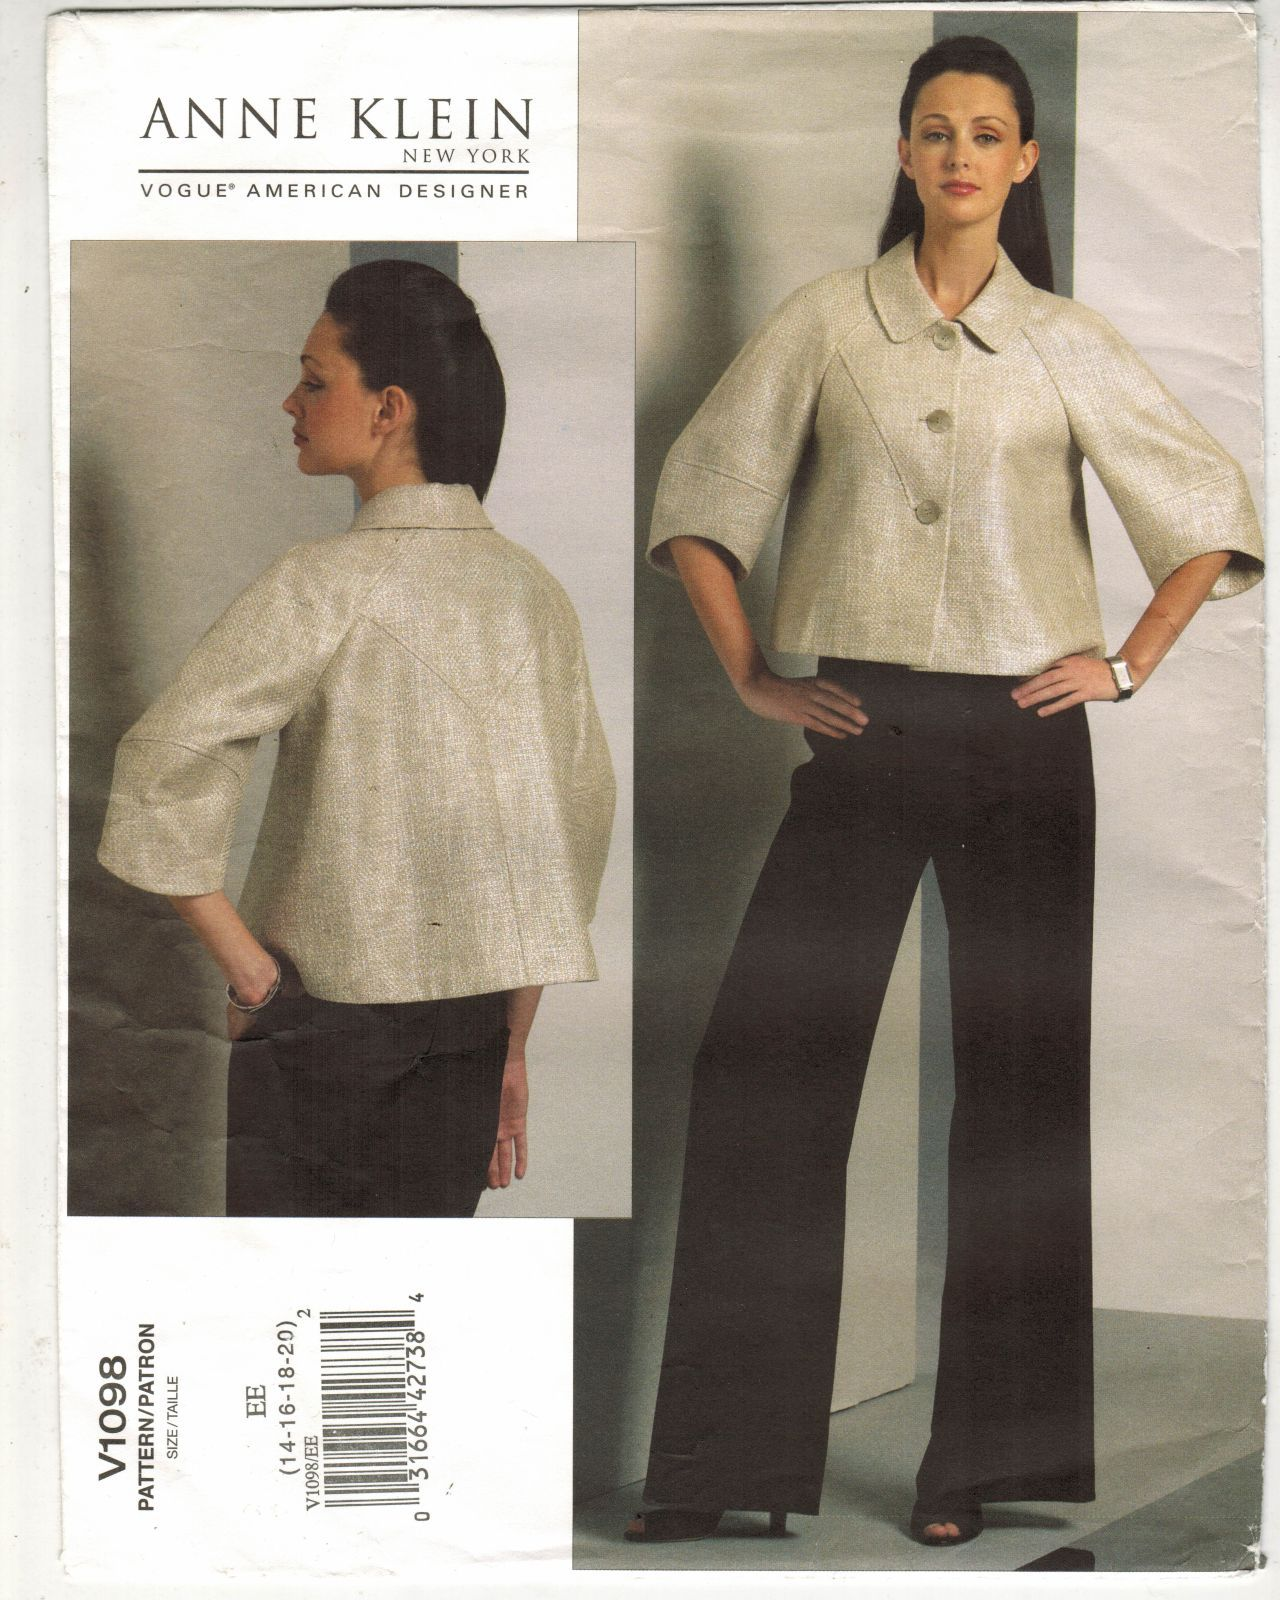 Primary image for Misses Vogue American Designer Anne Klein New York Jacket Pant Sew Pattern 14-20